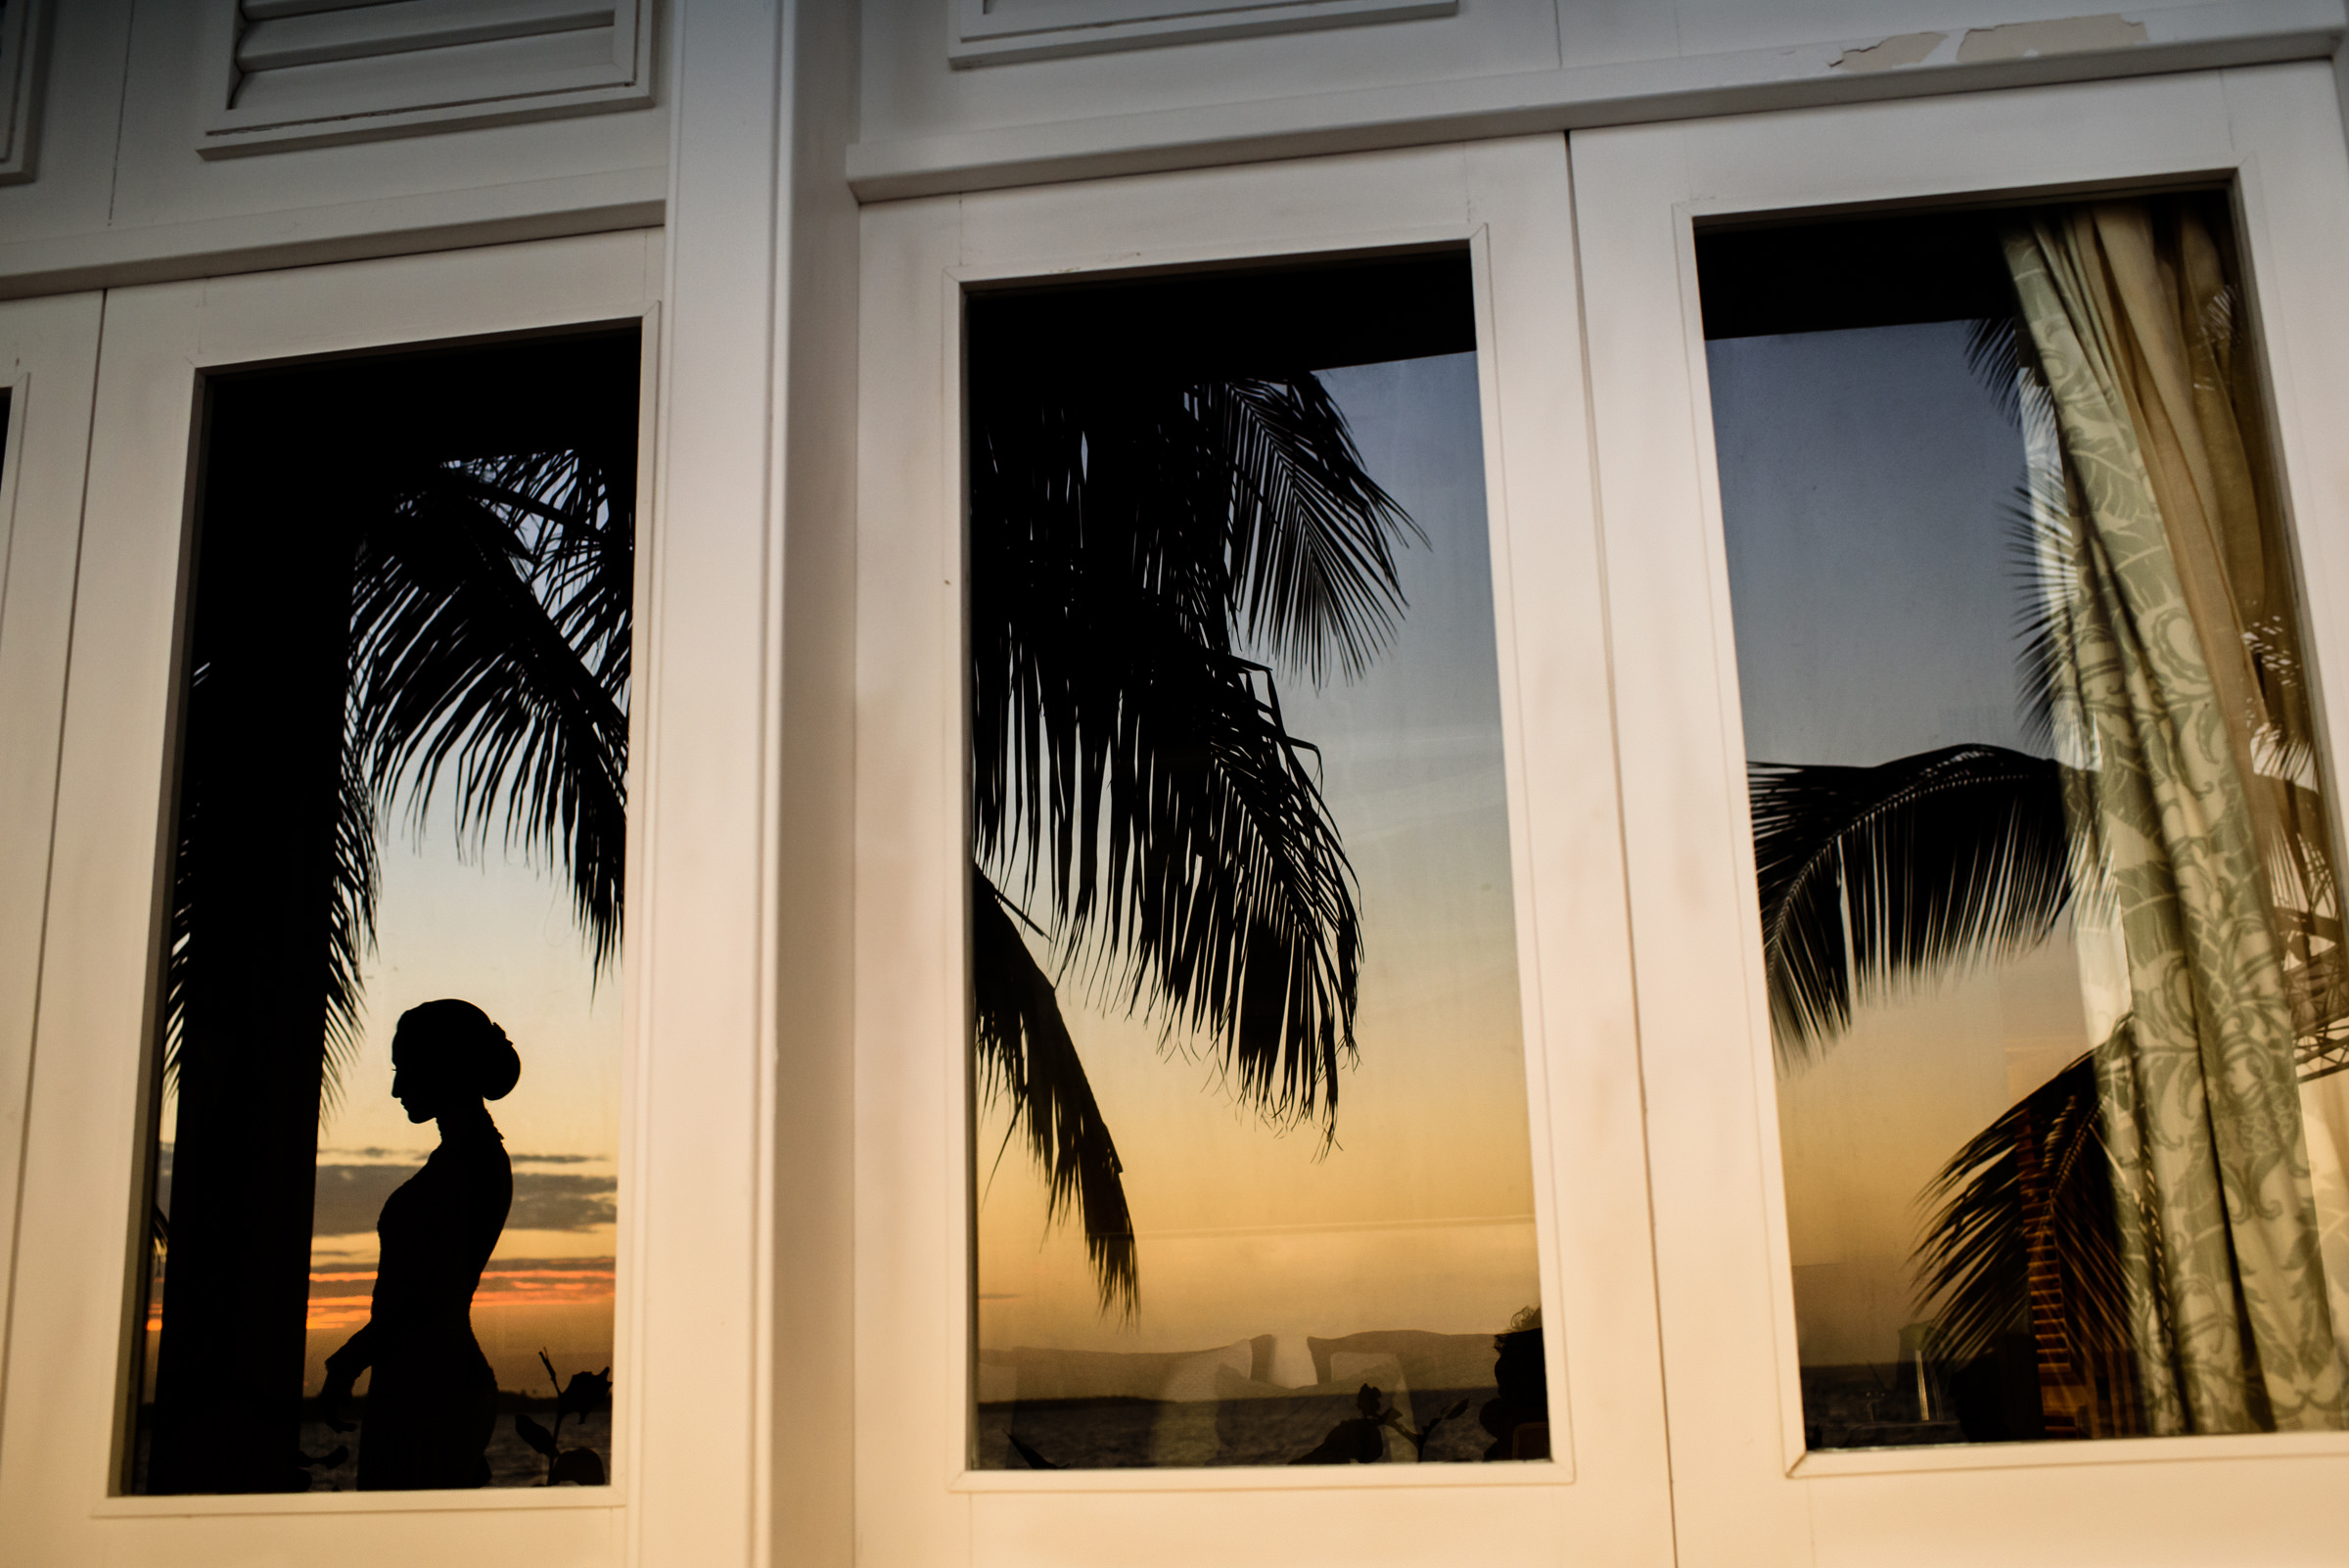 Silhouette of bride in window with palm trees - photo by El Marco Rojo